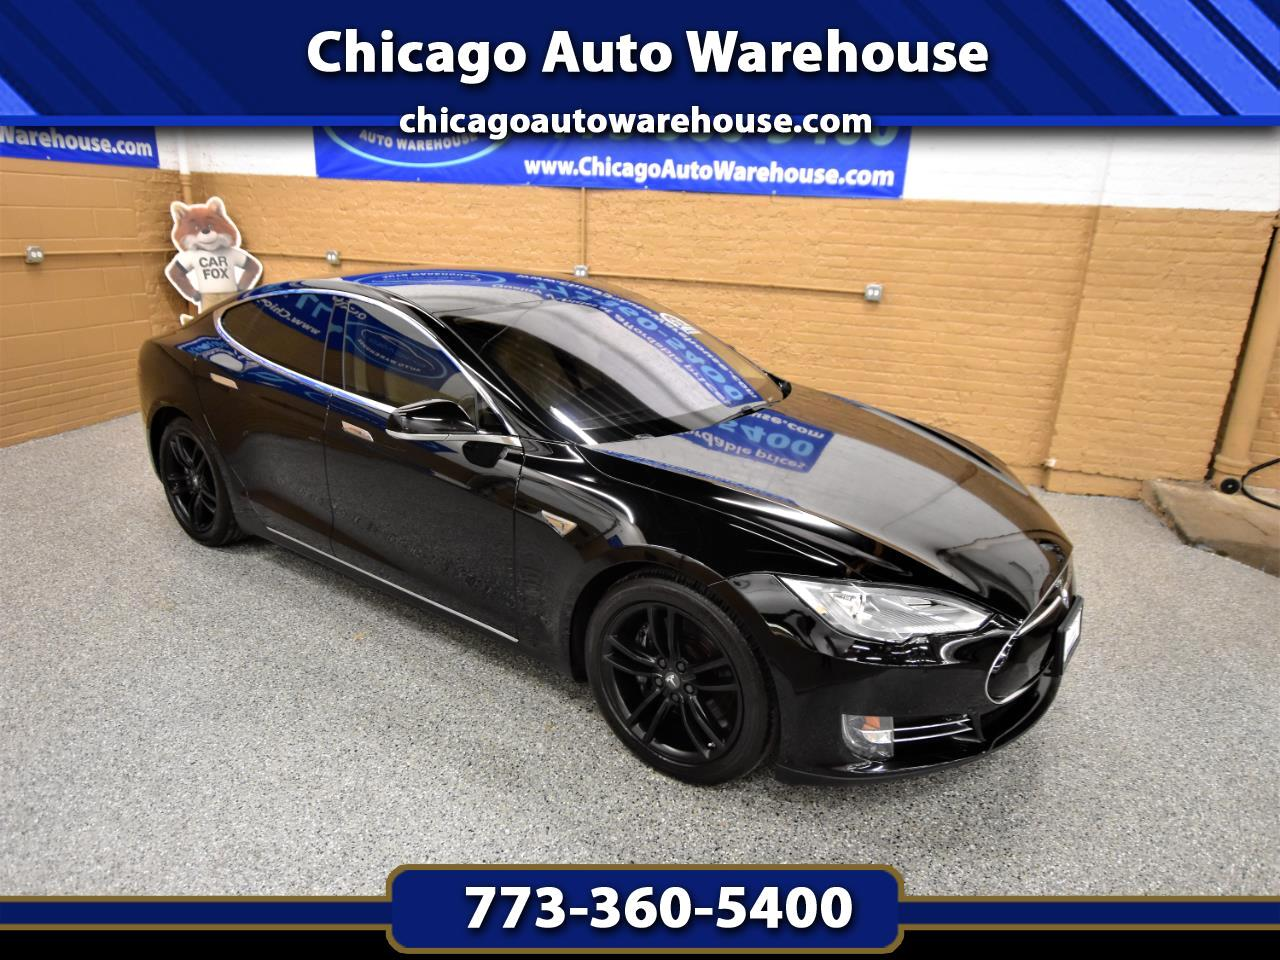 2013 Tesla Model S 4dr Sdn 85 kWh Battery